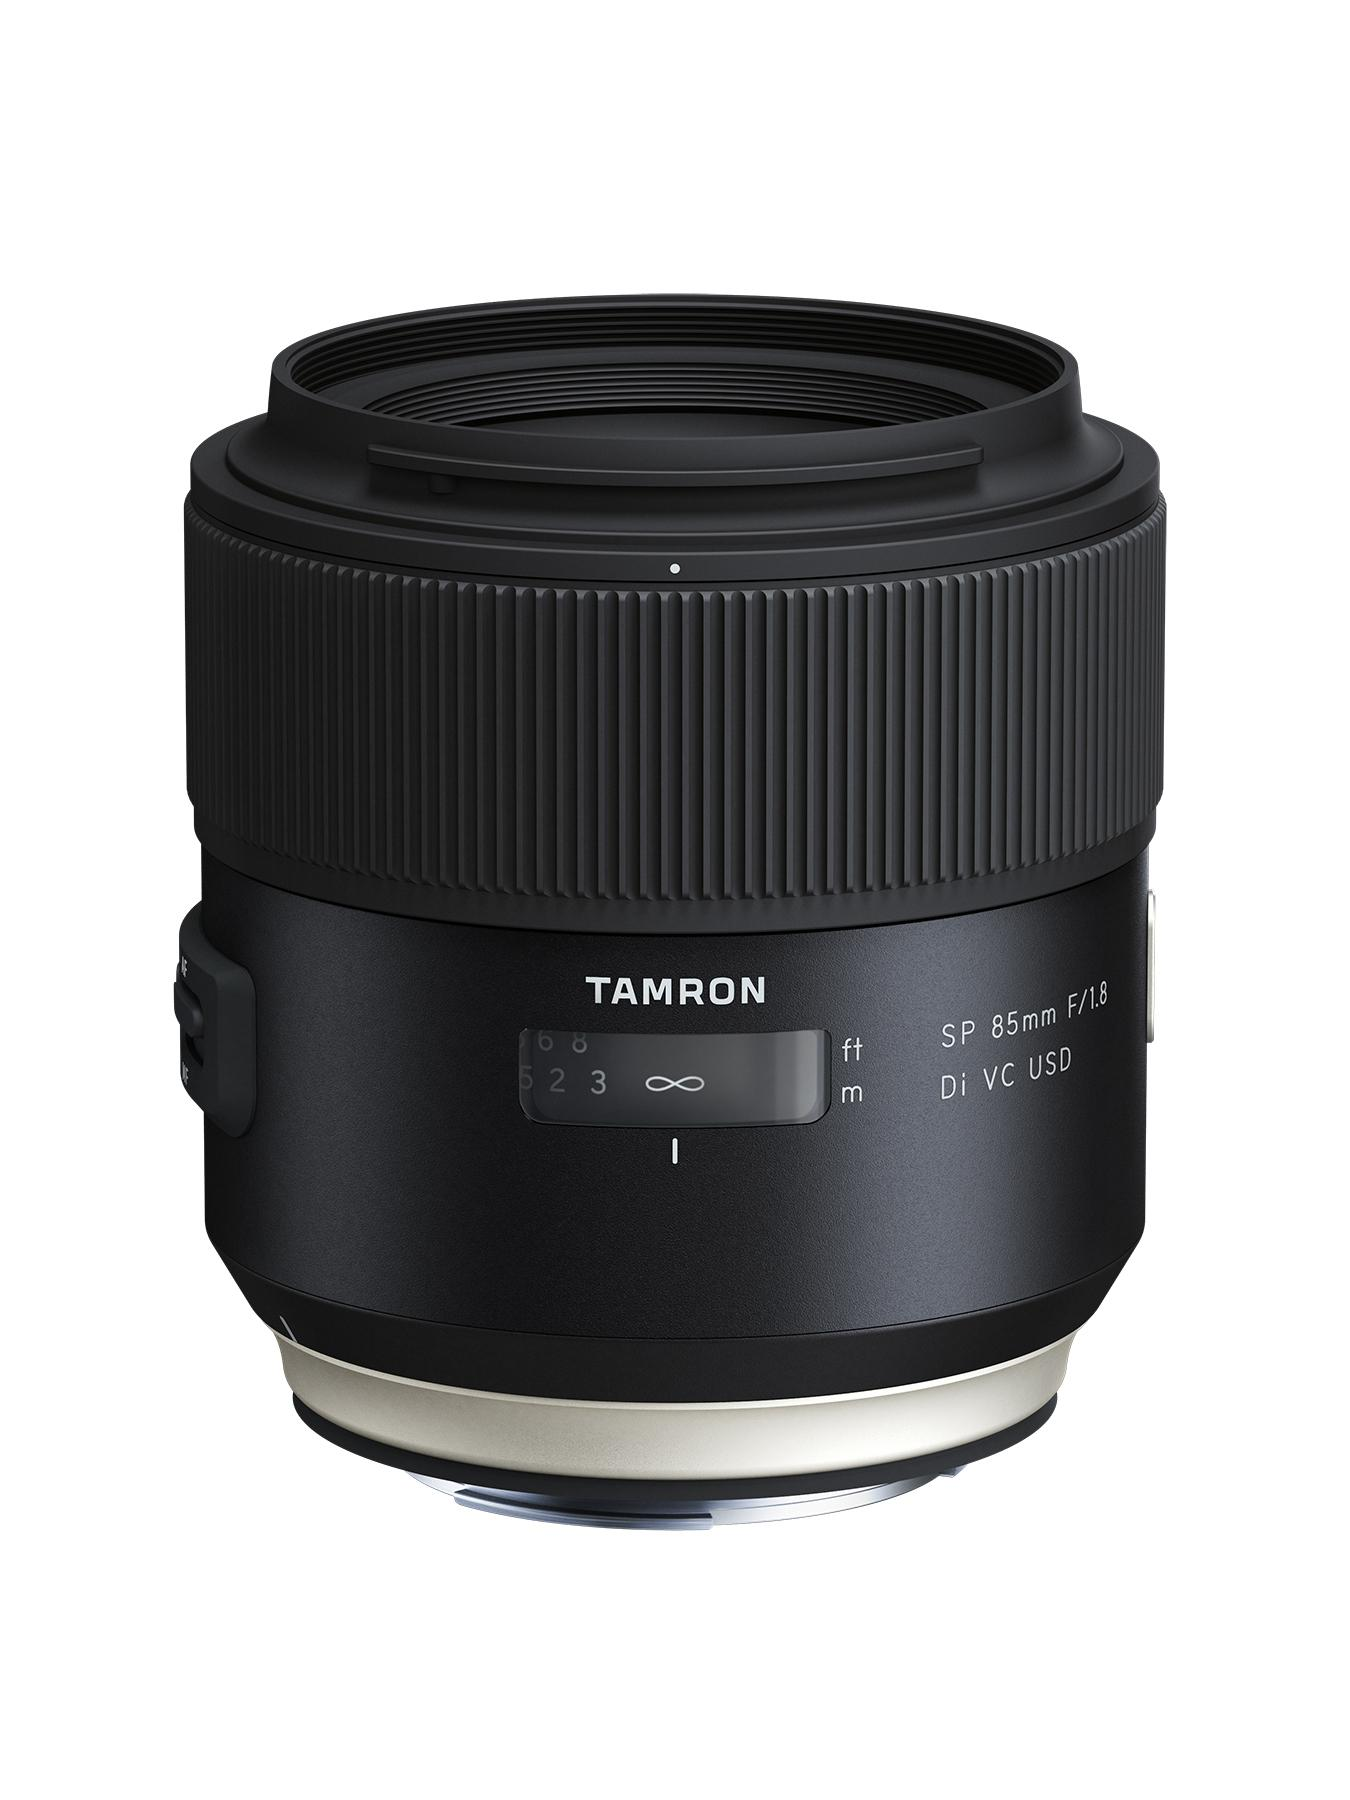 Tamron SP 85mm F1.8 Di VC USD (model F016 Canon mount)